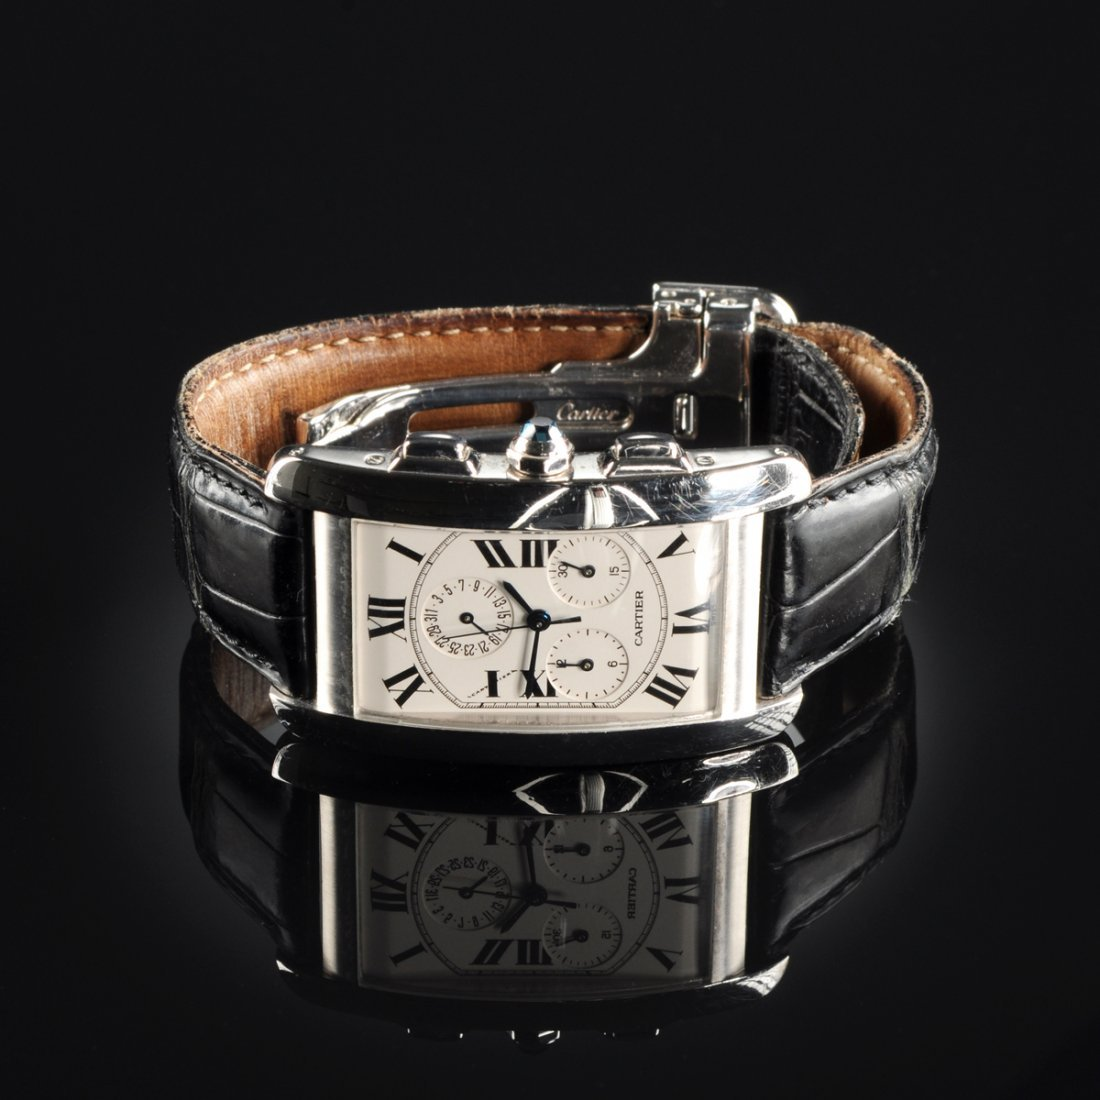 AN 18K CARTIER TANK AMERICAINE GENT'S WATCH,